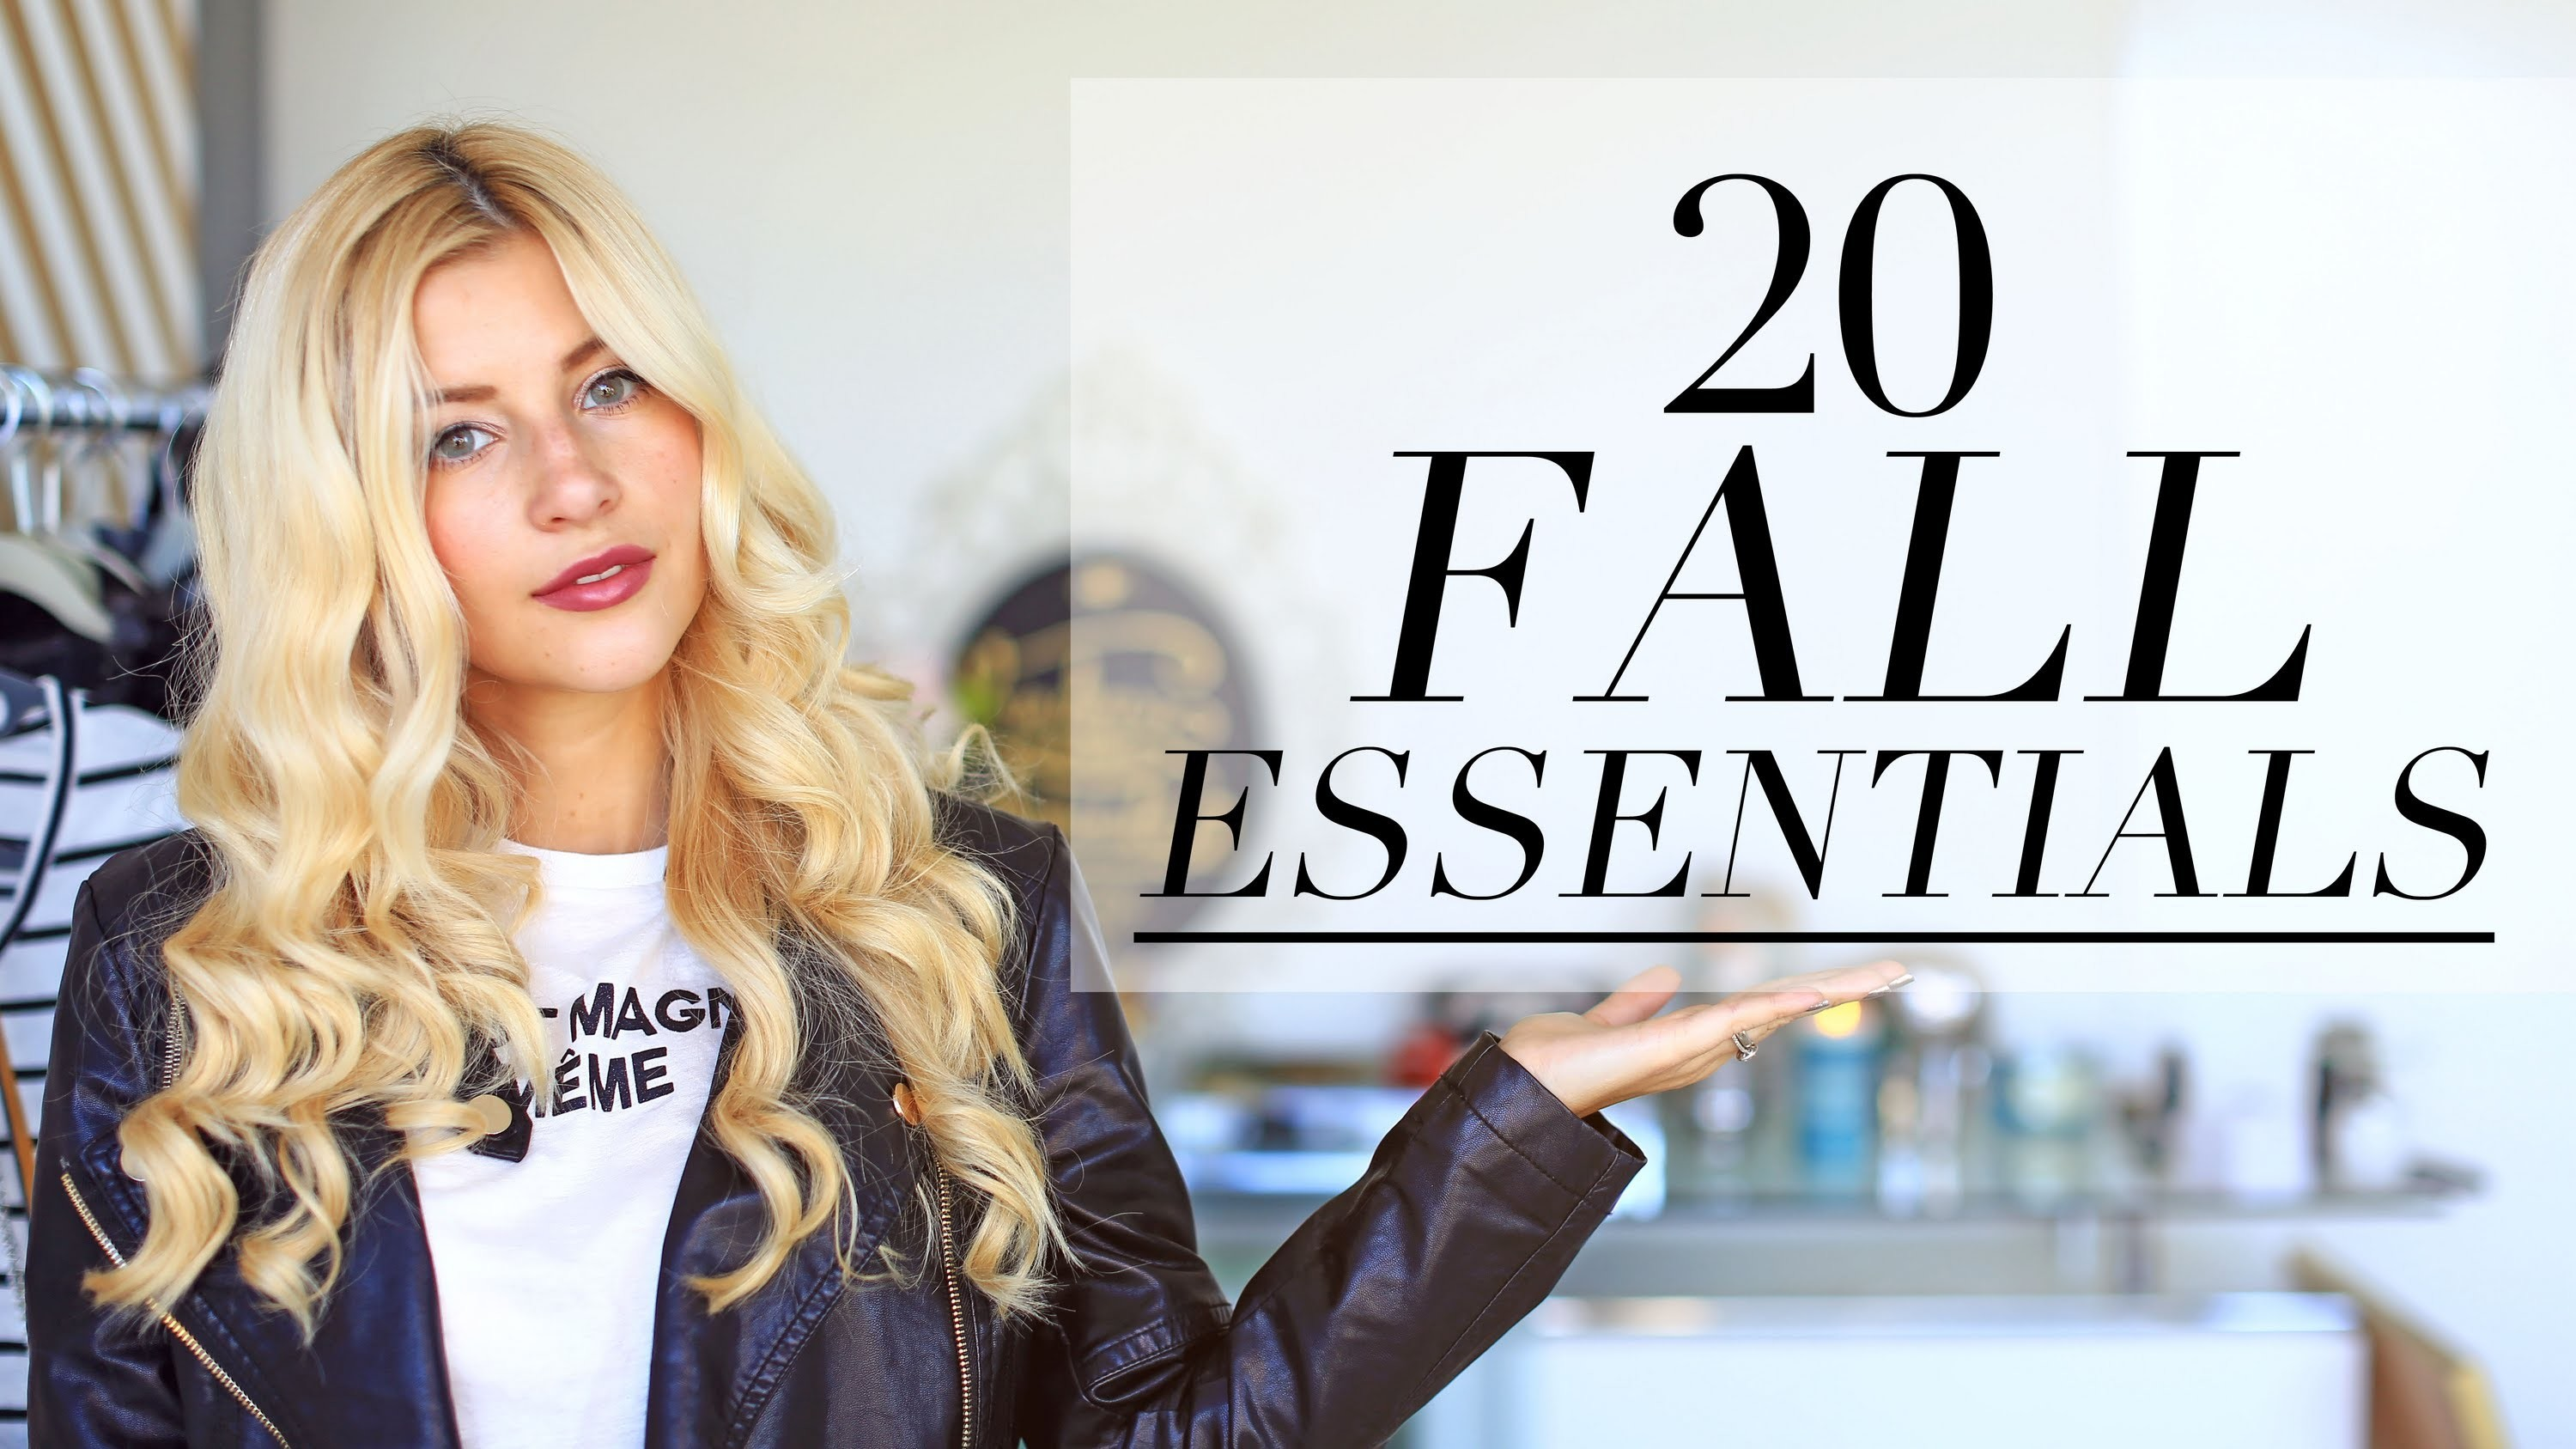 The 20 Fall Wardrobe Essentials